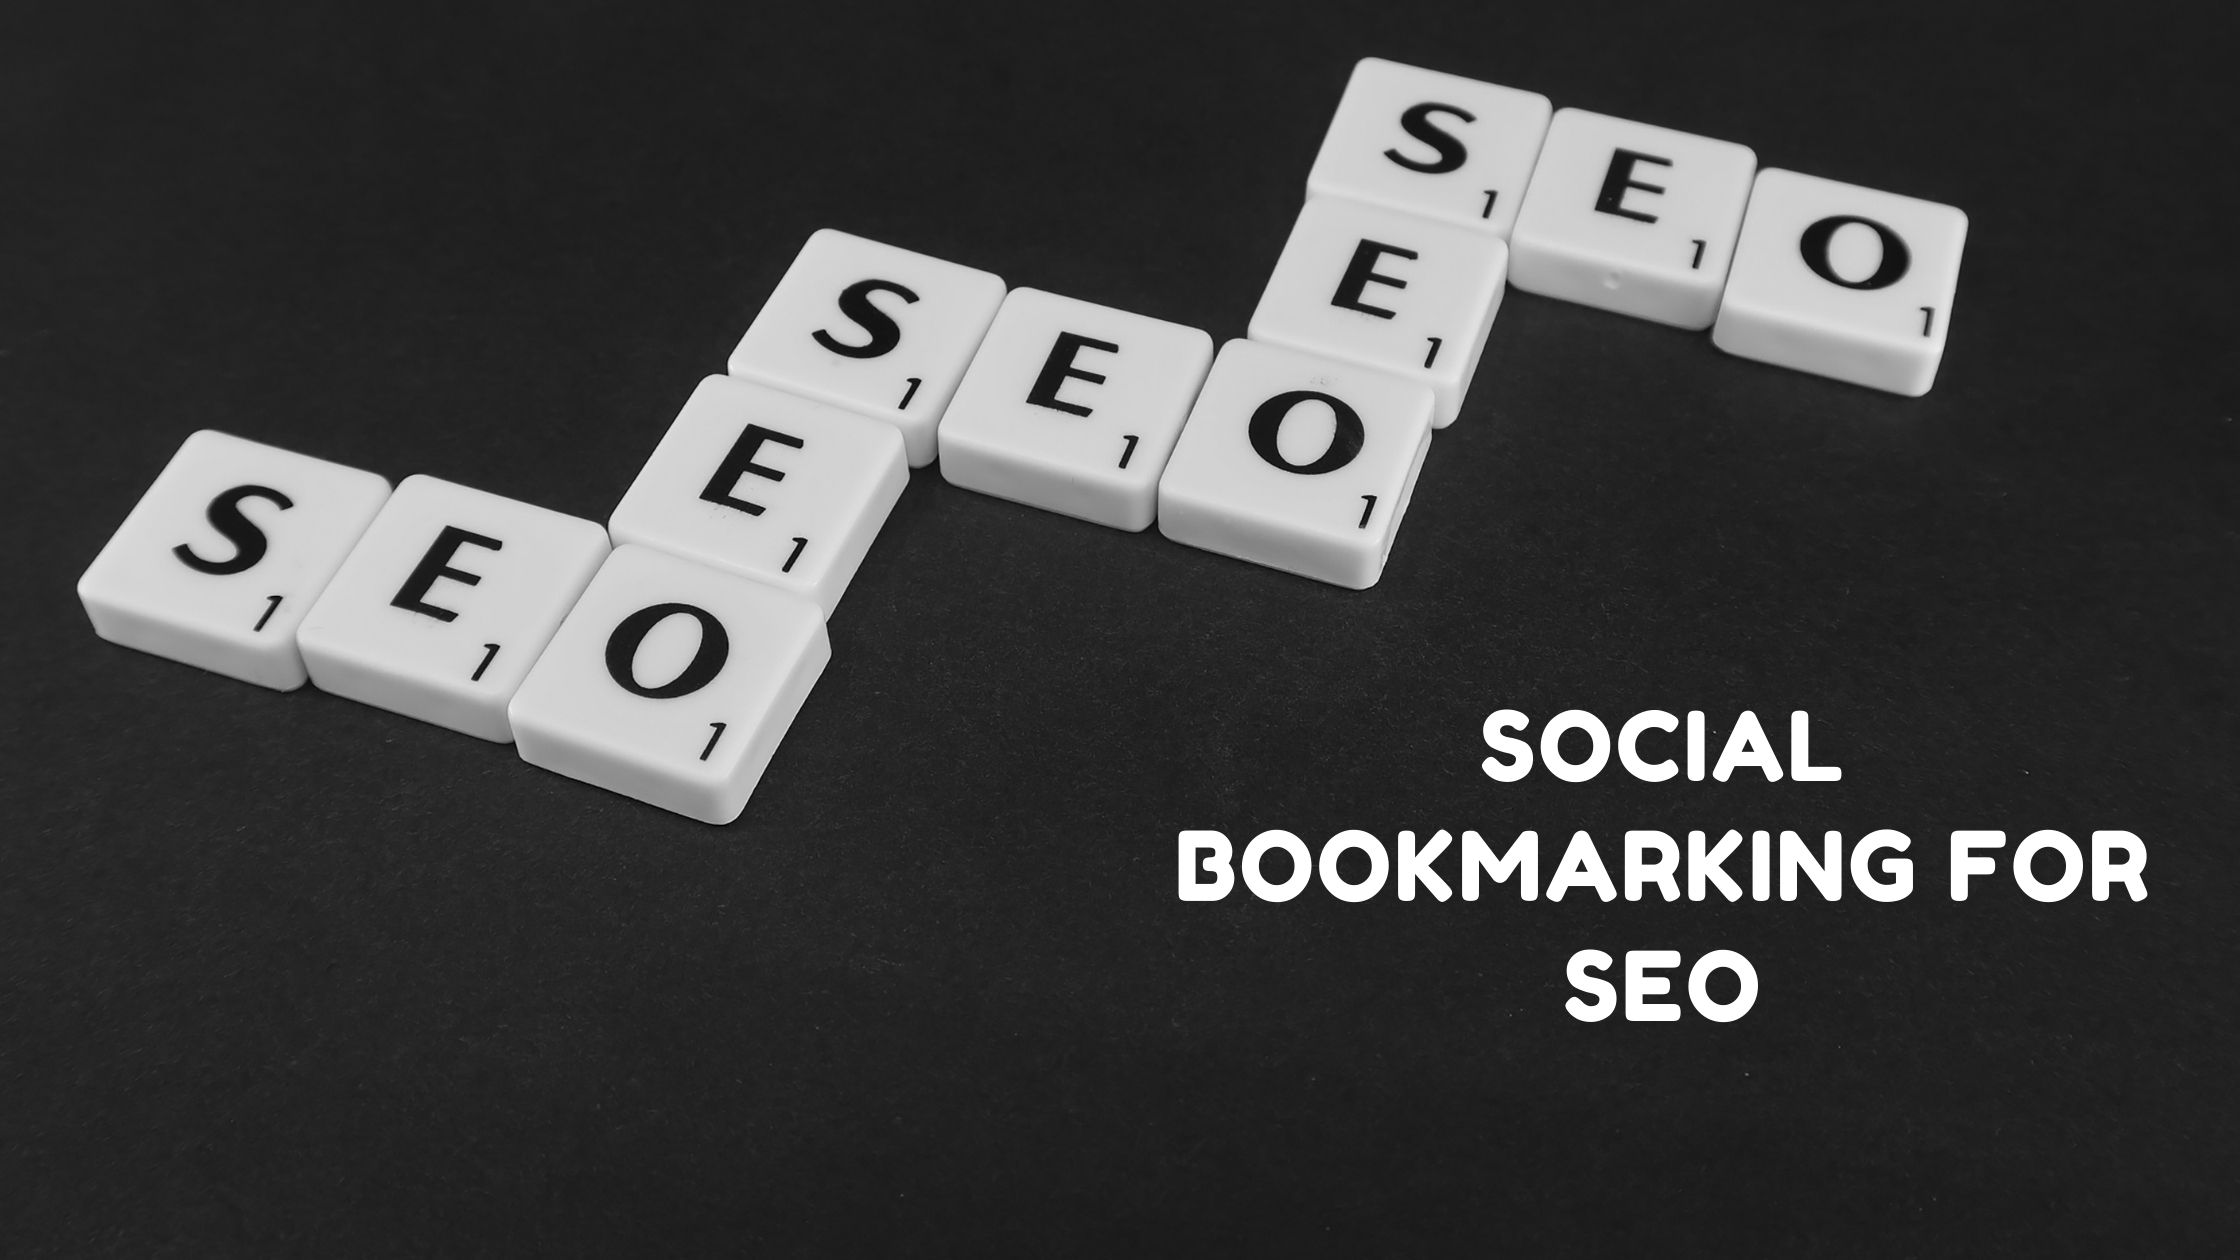 How to Social Bookmarking for SEO